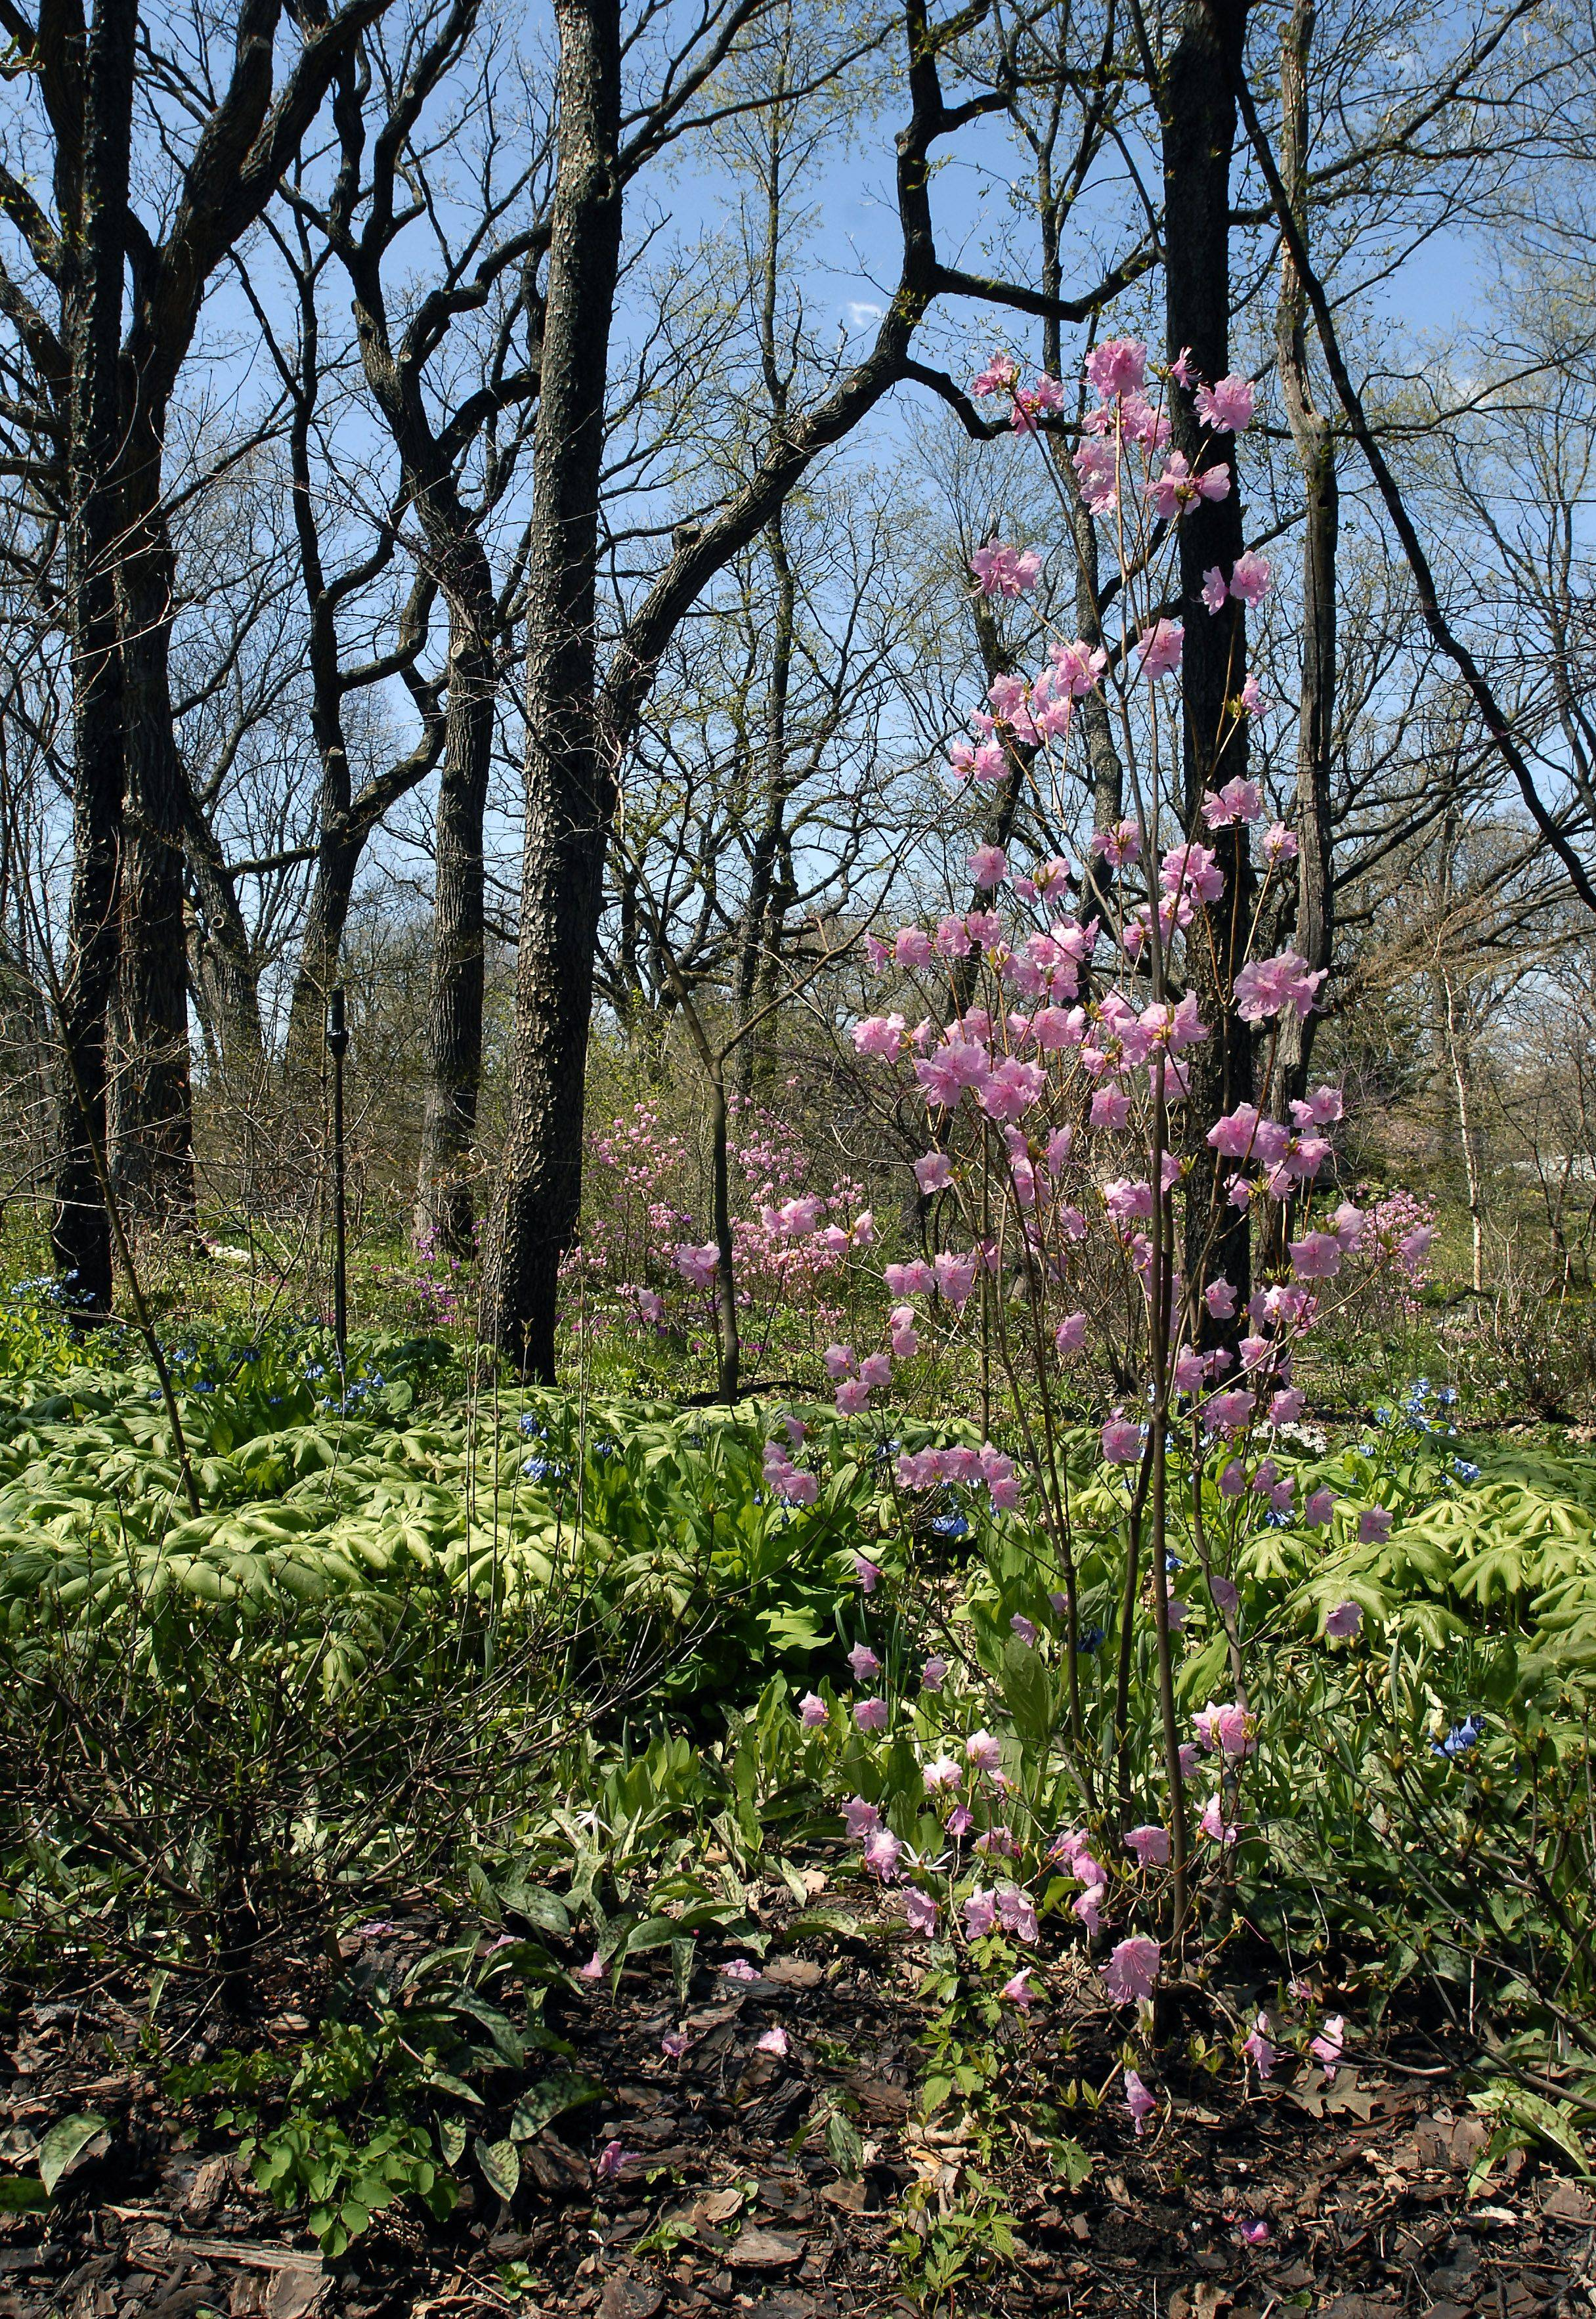 Azaleas and rhododendrons could be the showiest plants at Barbara Wetzel's open garden.